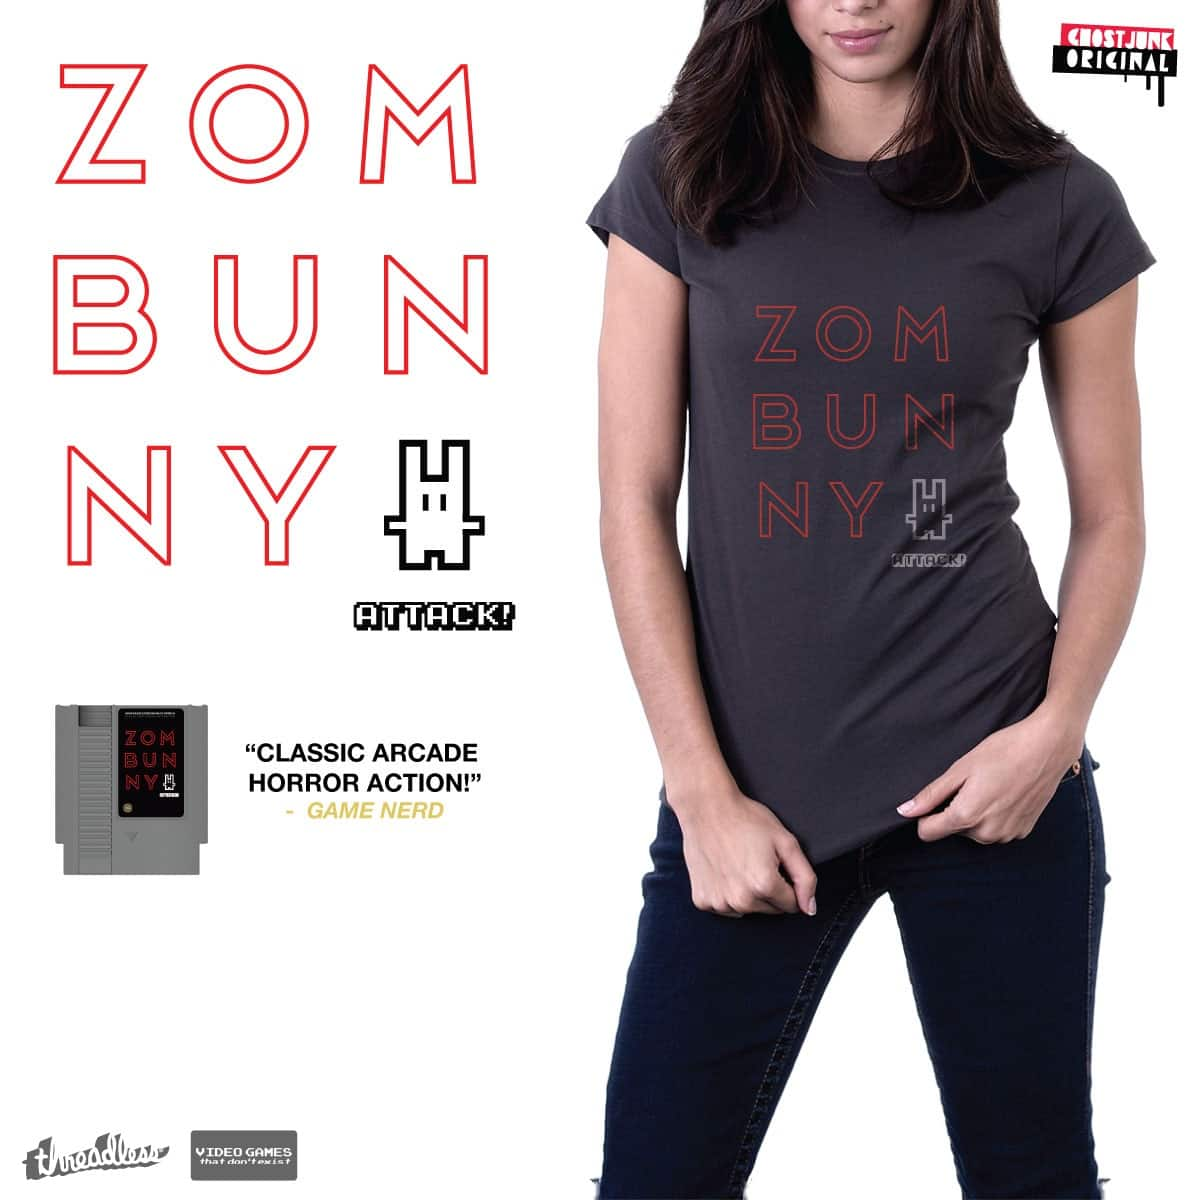 ZOMBUNNY ATTACK! by ghostjunk on Threadless